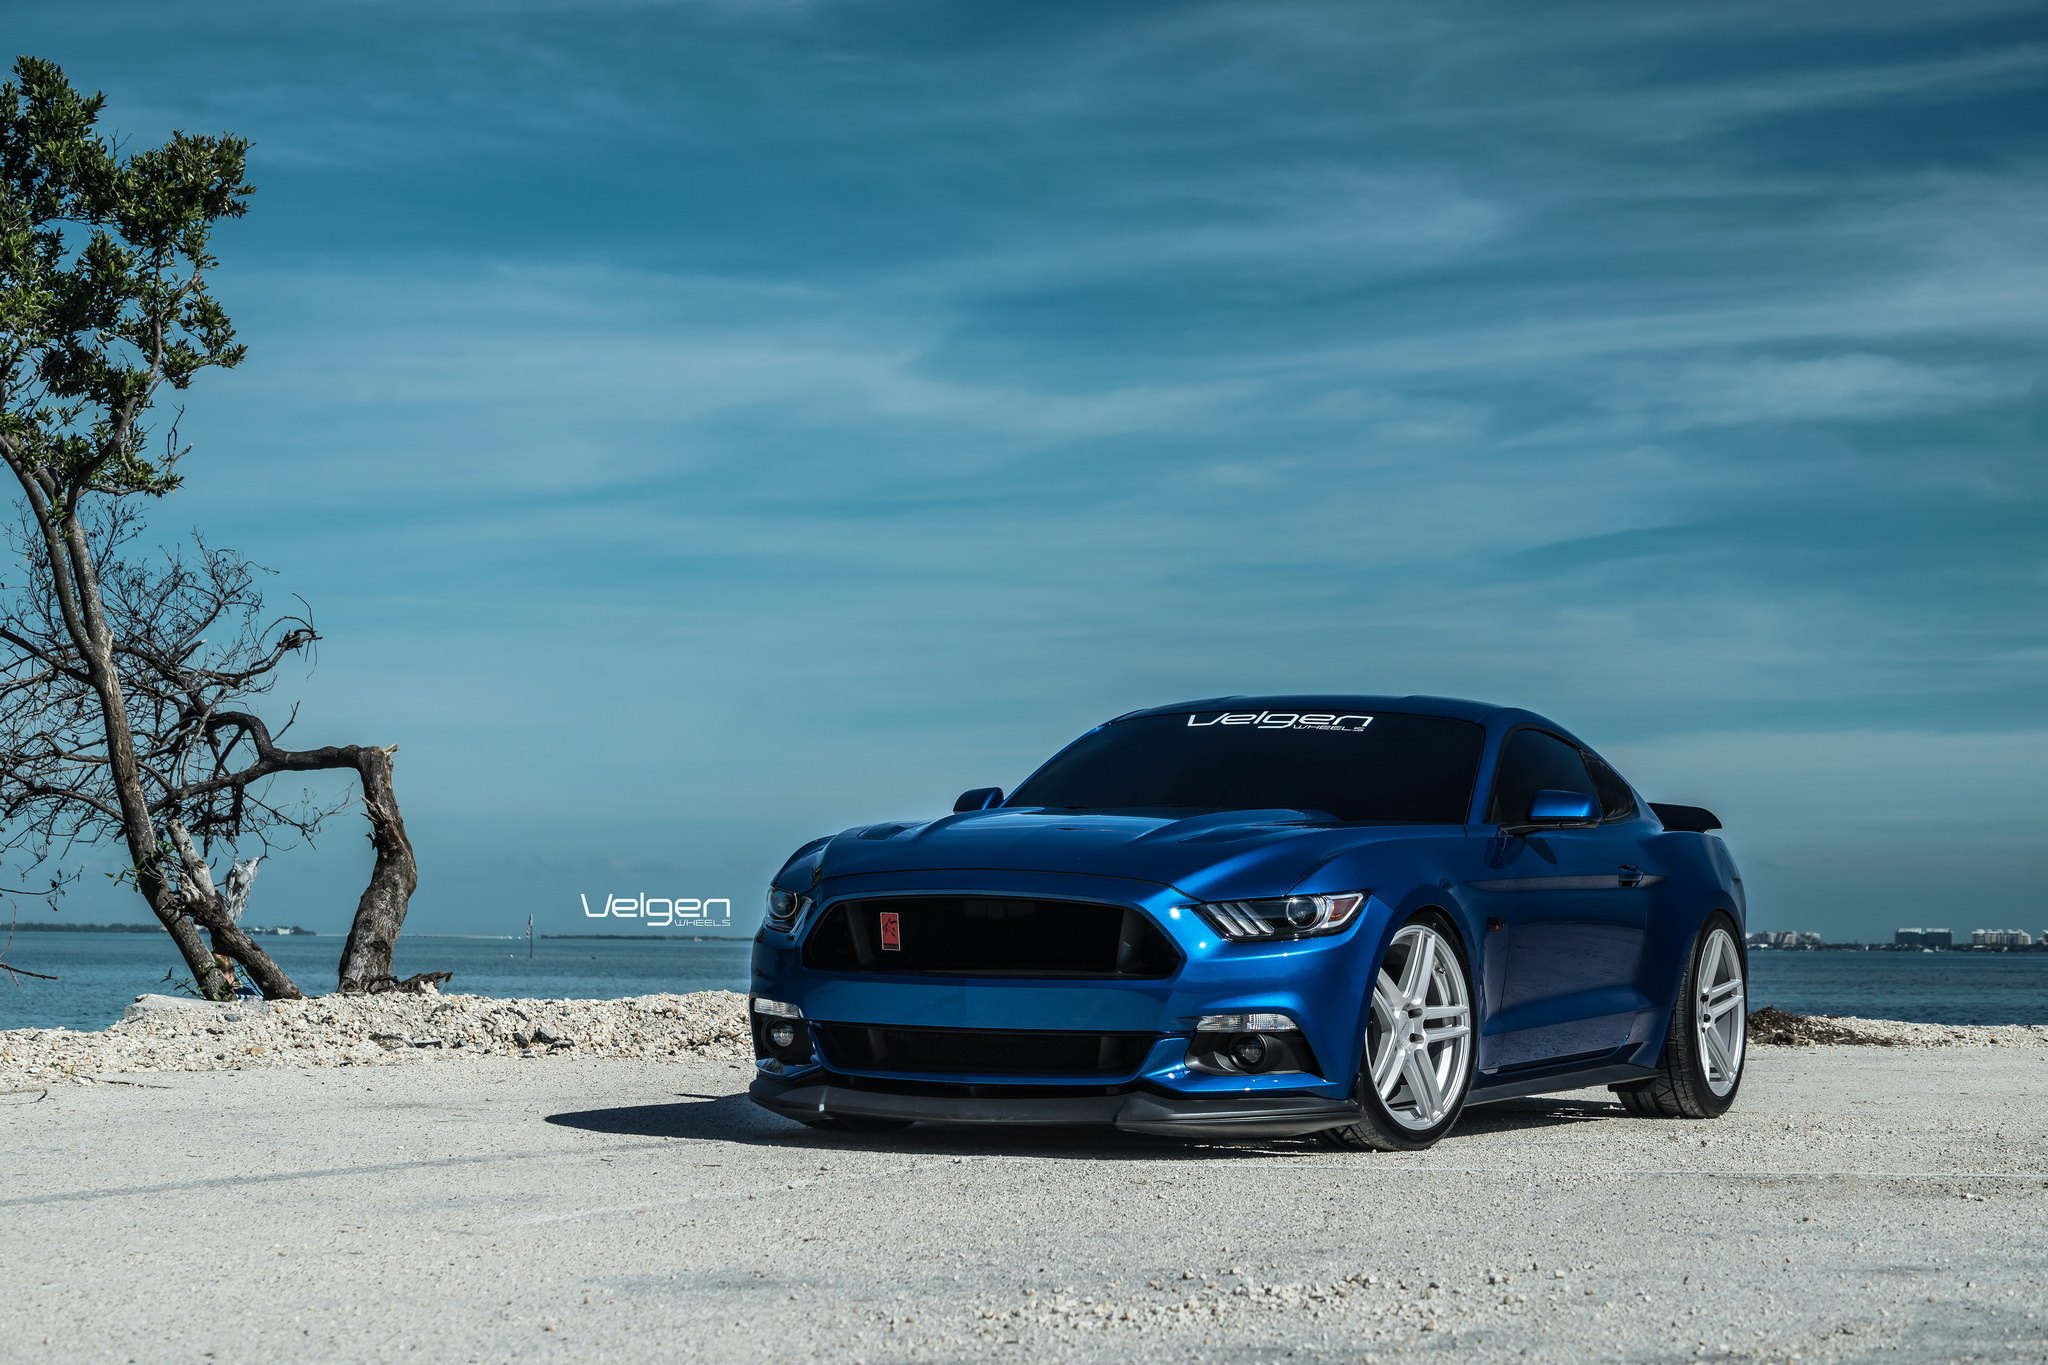 Blue Ford Mustang With Aftermarket Front Lip Photo By Velgen